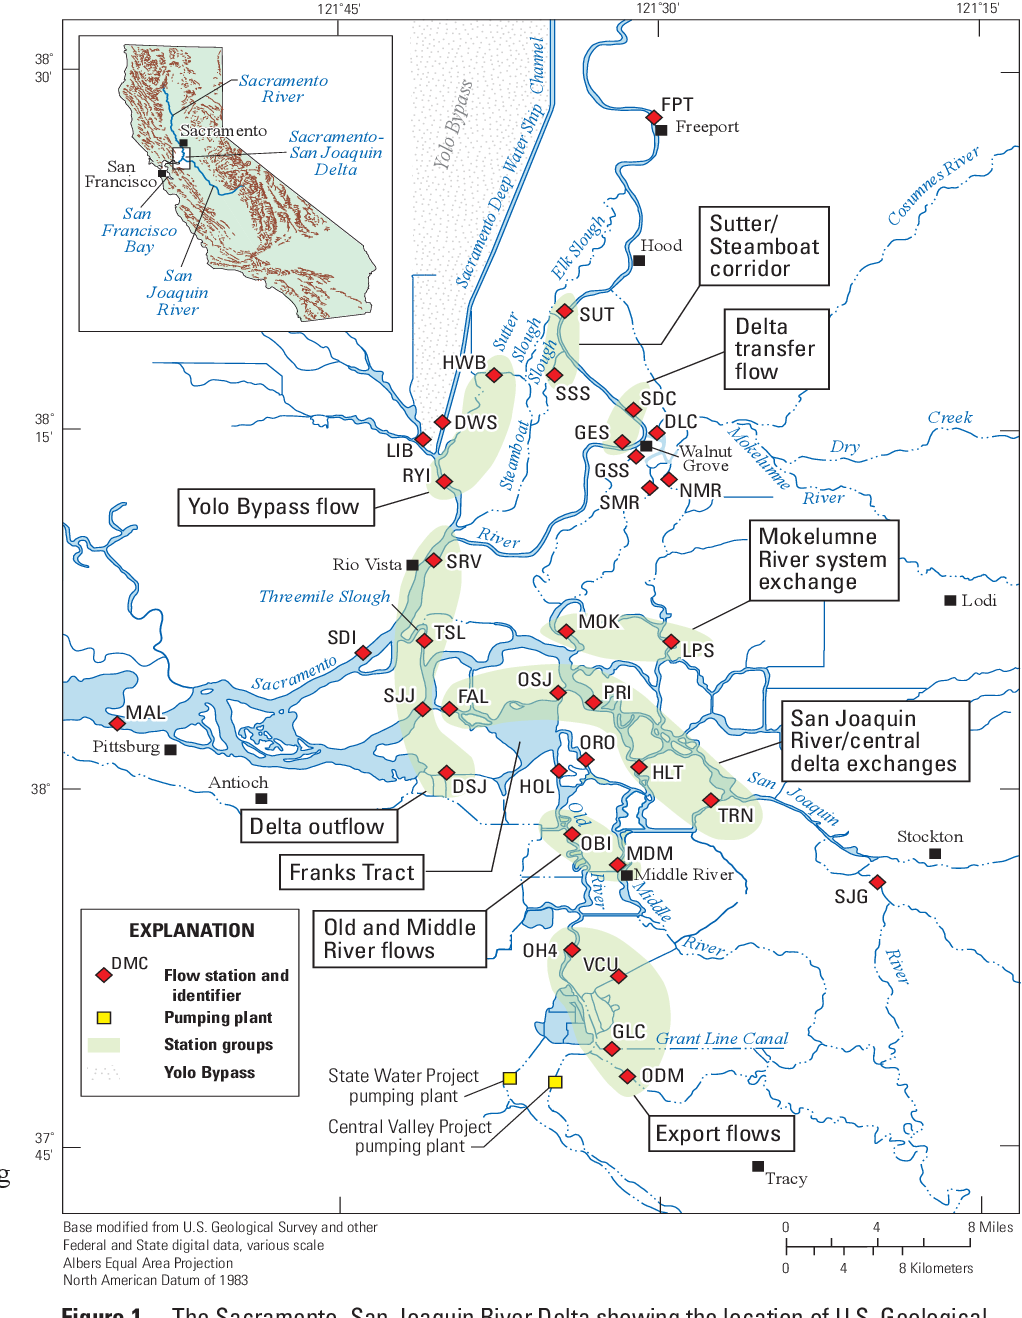 Figure 1 from Innovation in Monitoring: The U.S. Geological ... on colorado river on us map, potomac river on us map, sonoma on us map, san joaquin river on us map, shenandoah river on us map, delaware river on us map, cascade range on us map, arkansas river on us map, lake tahoe on us map, santa cruz on us map, central valley on us map, roanoke river on us map, appalachian mountains on us map, rocky mountains on us map, chesapeake bay on us map, los angeles on us map, snake river on us map, gila river on us map, susquehanna river on us map, columbia river on us map,